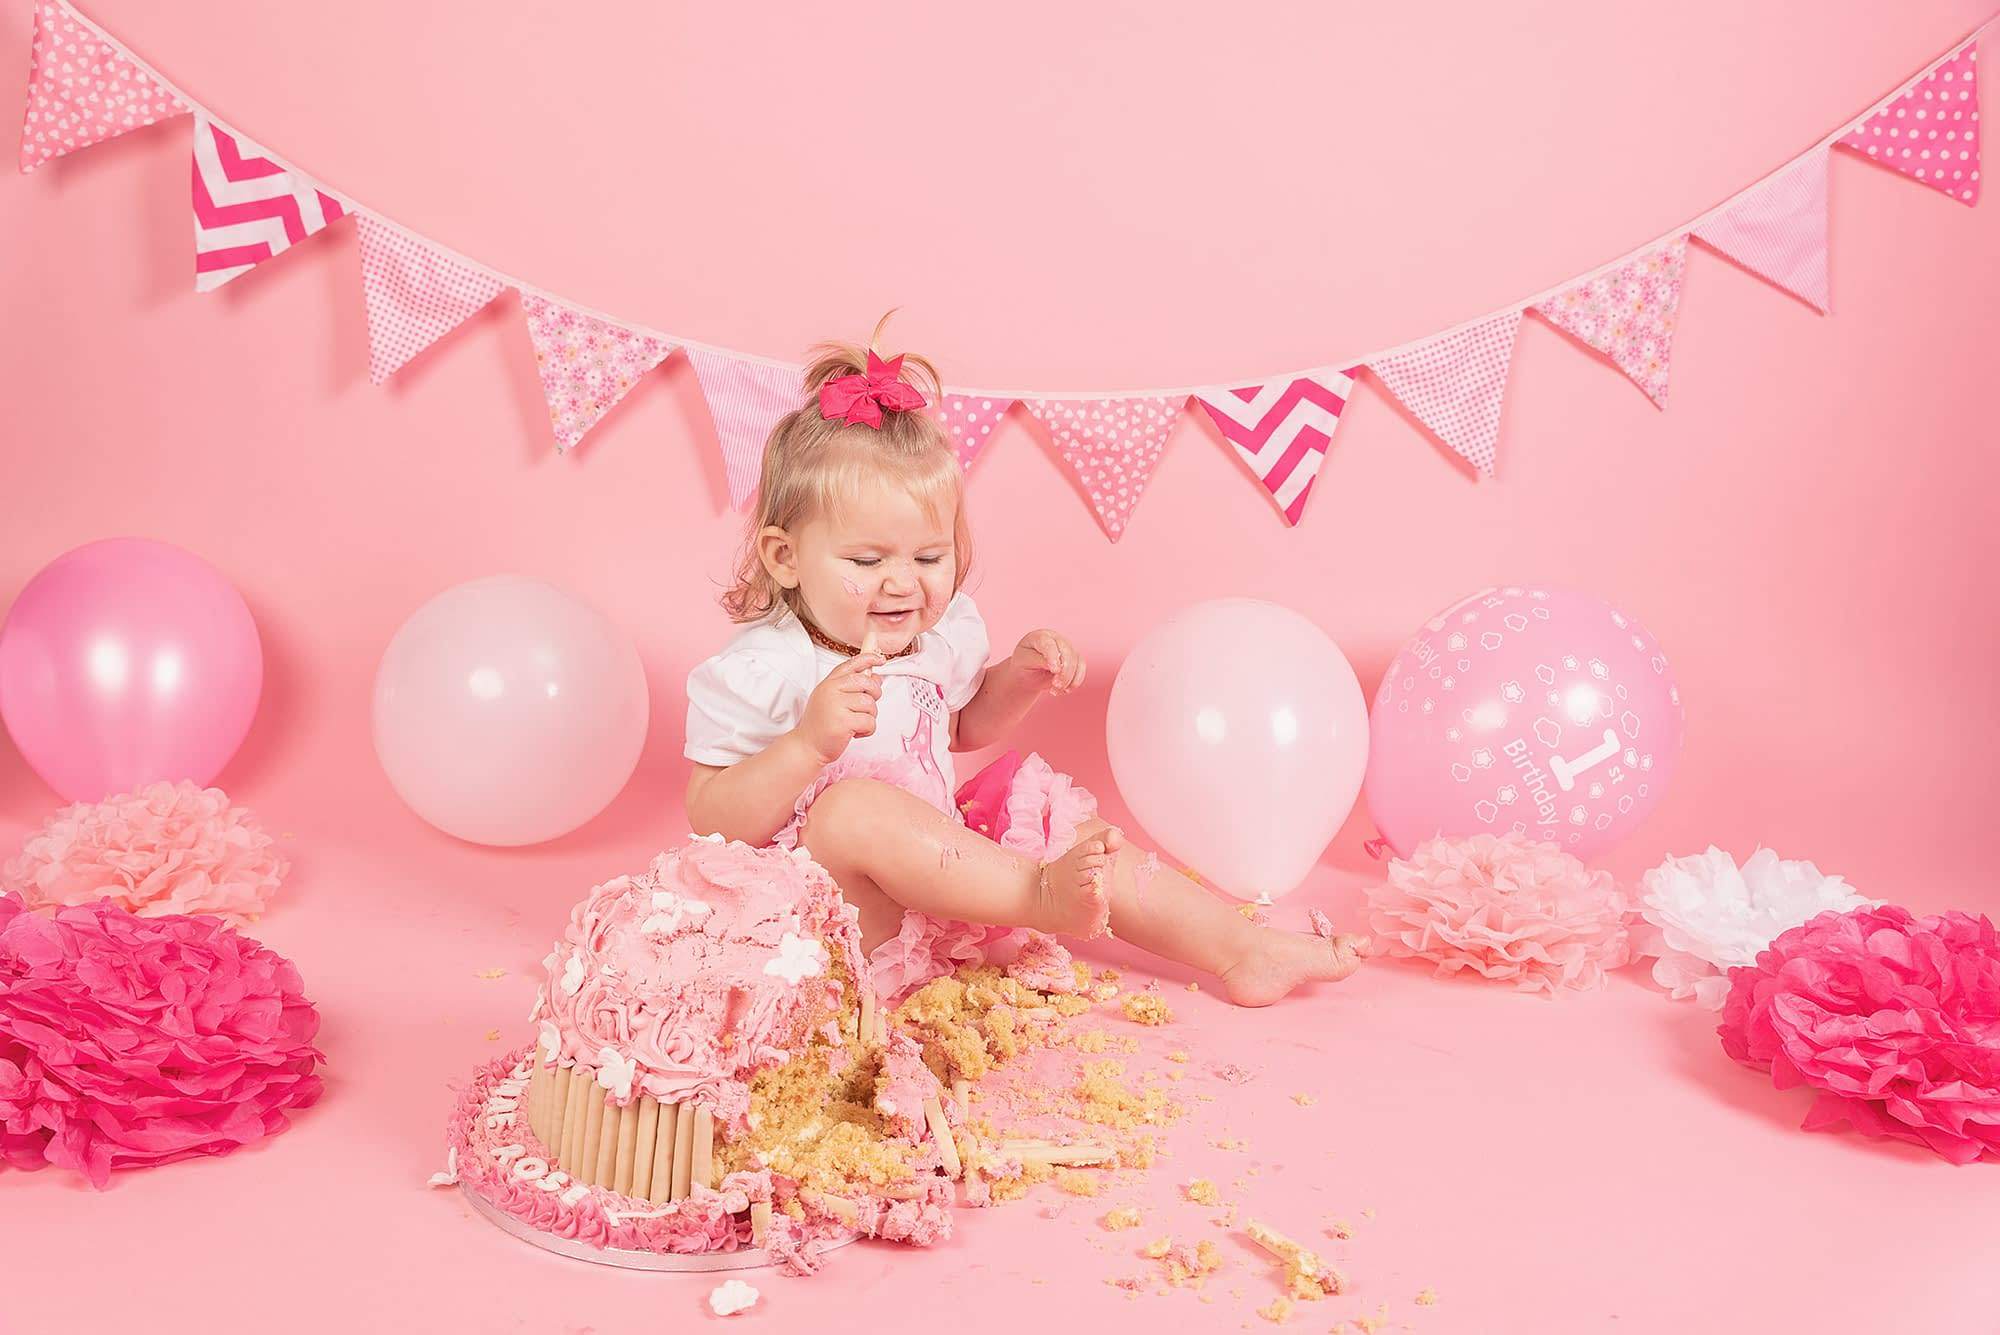 Cake smash photogapher Crawley. Pink backdrop with pink and white bunting. Little girl in tutu and white top with balloons and pom poms around her. Big giant cupcake with sponge sprinkled around her.